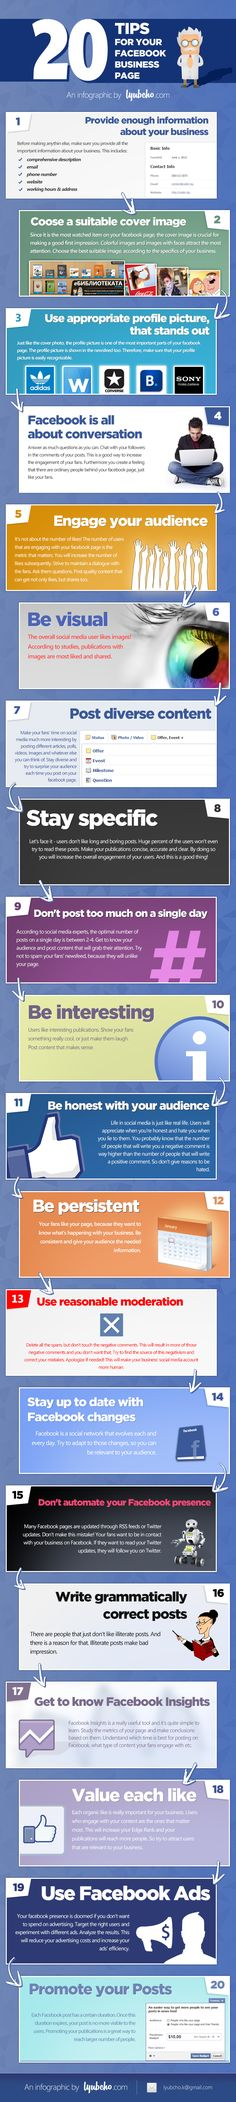 20 Tips for your Facebook Business Page.